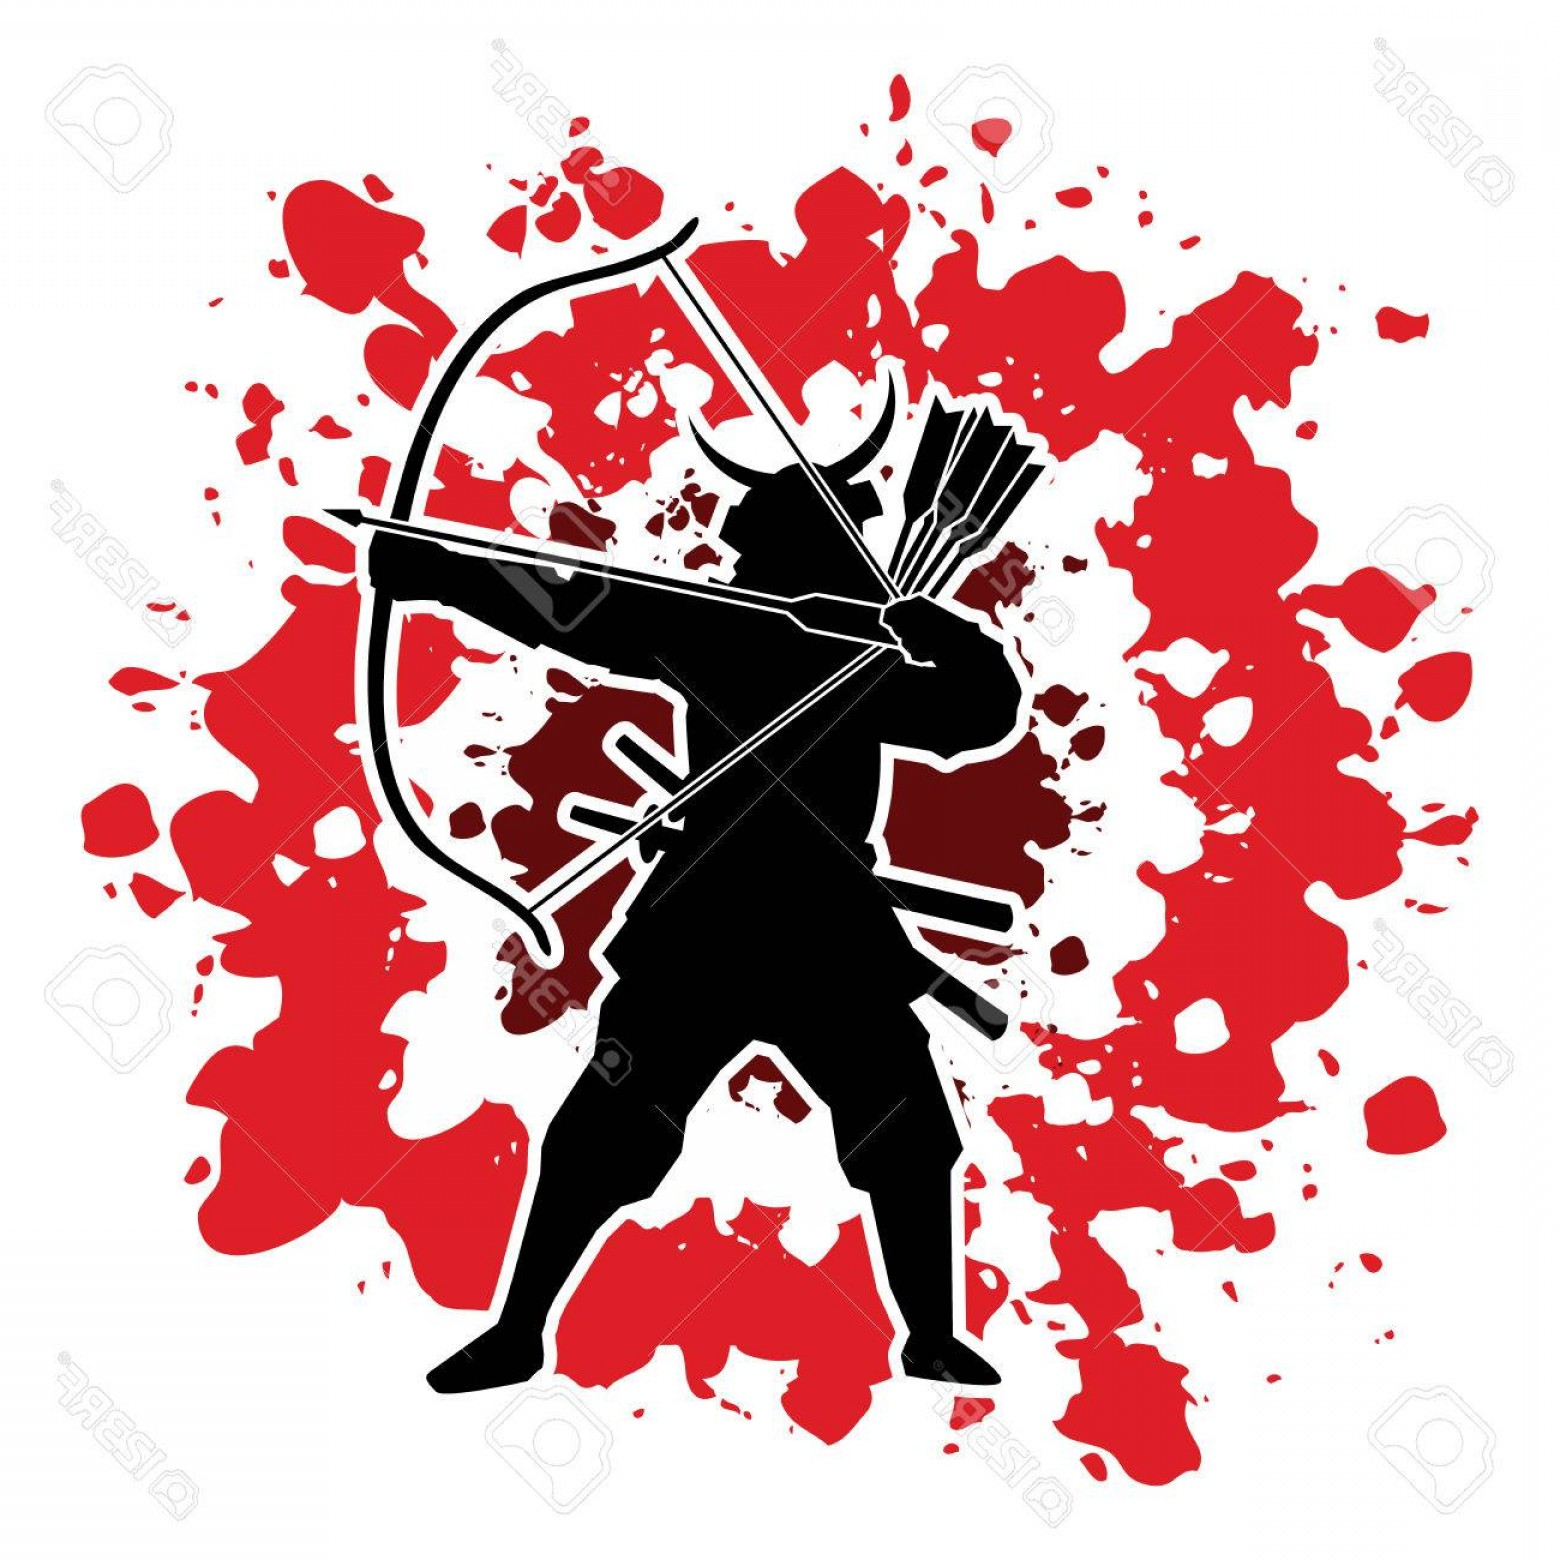 Samurai Warrior Vector: Photostock Vector Samurai Warrior With Bow Designed On Splatter Blood Background Graphic Vector